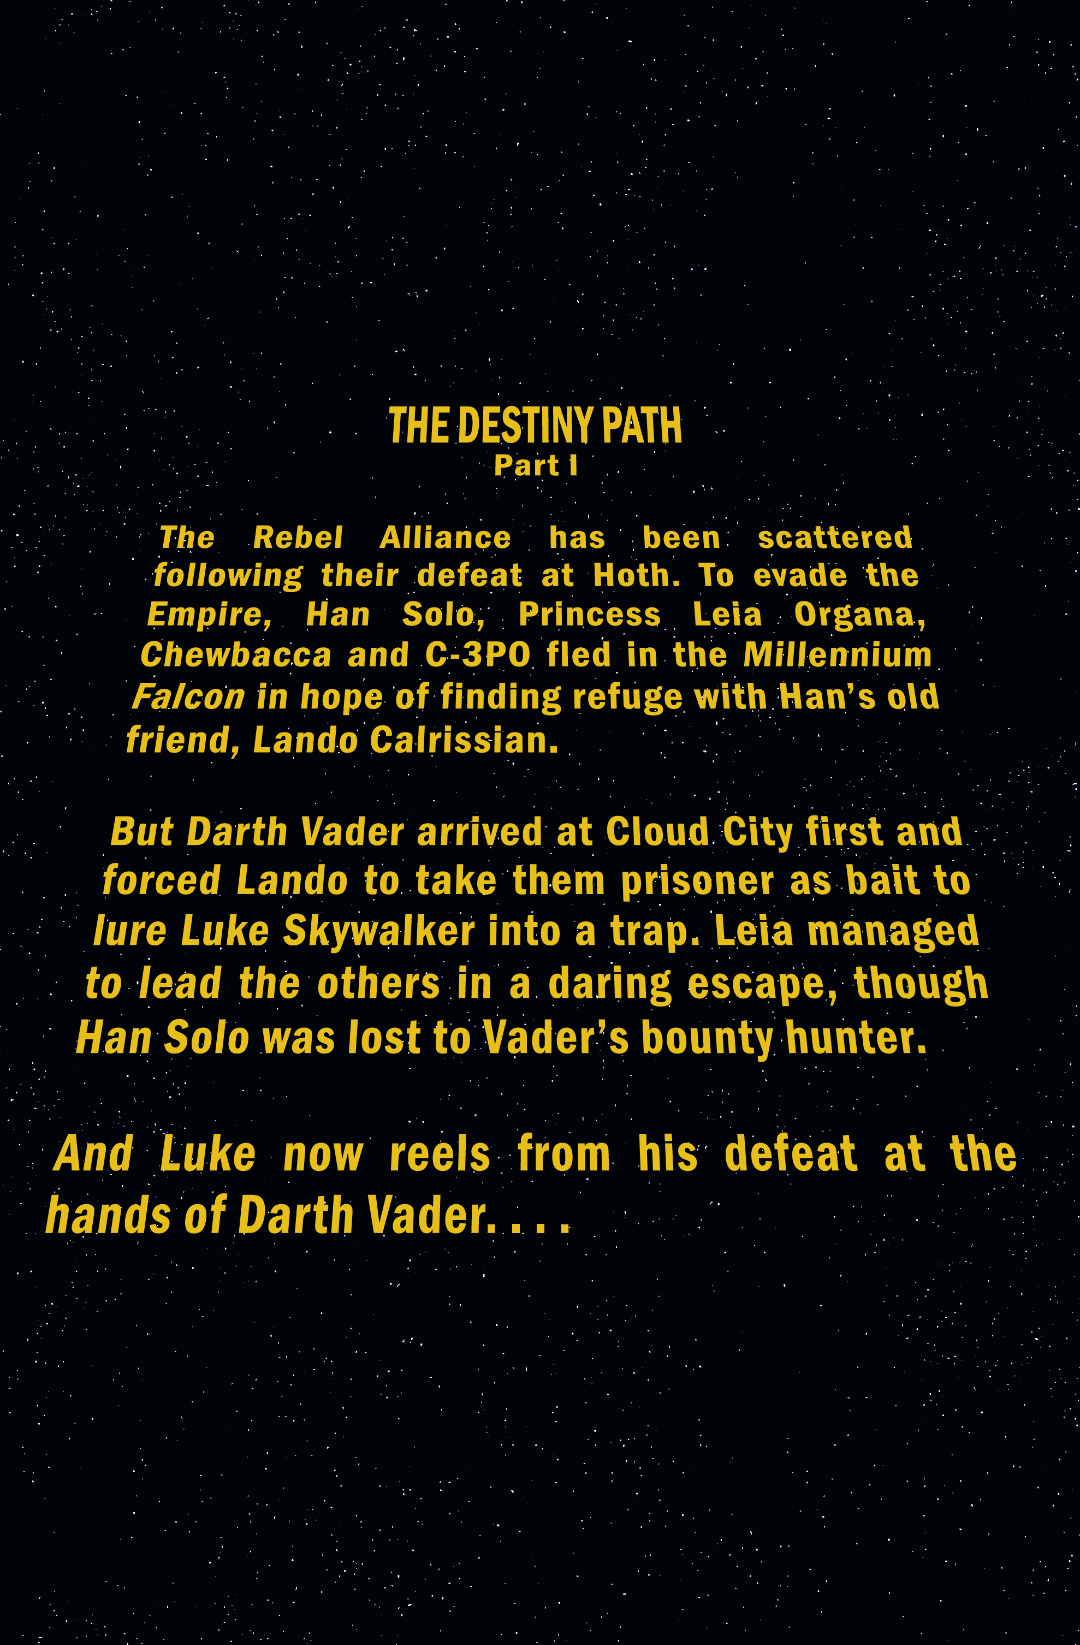 Star Wars #1: The opening roll.